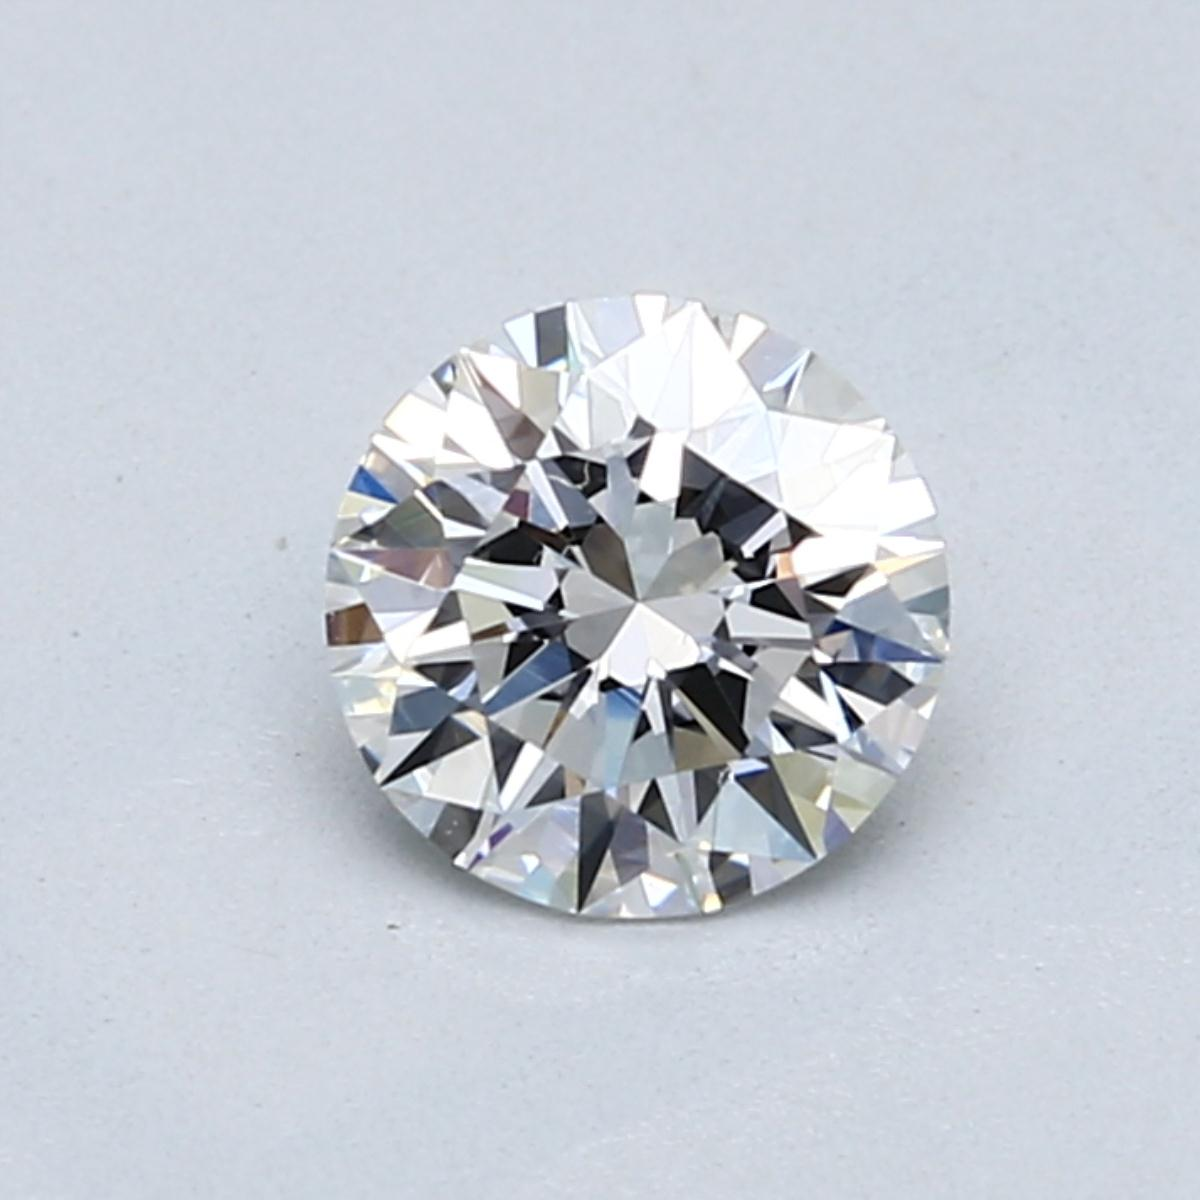 1.01 carat Round Diamond, Ideal cut, graded by the GIA laboratories.